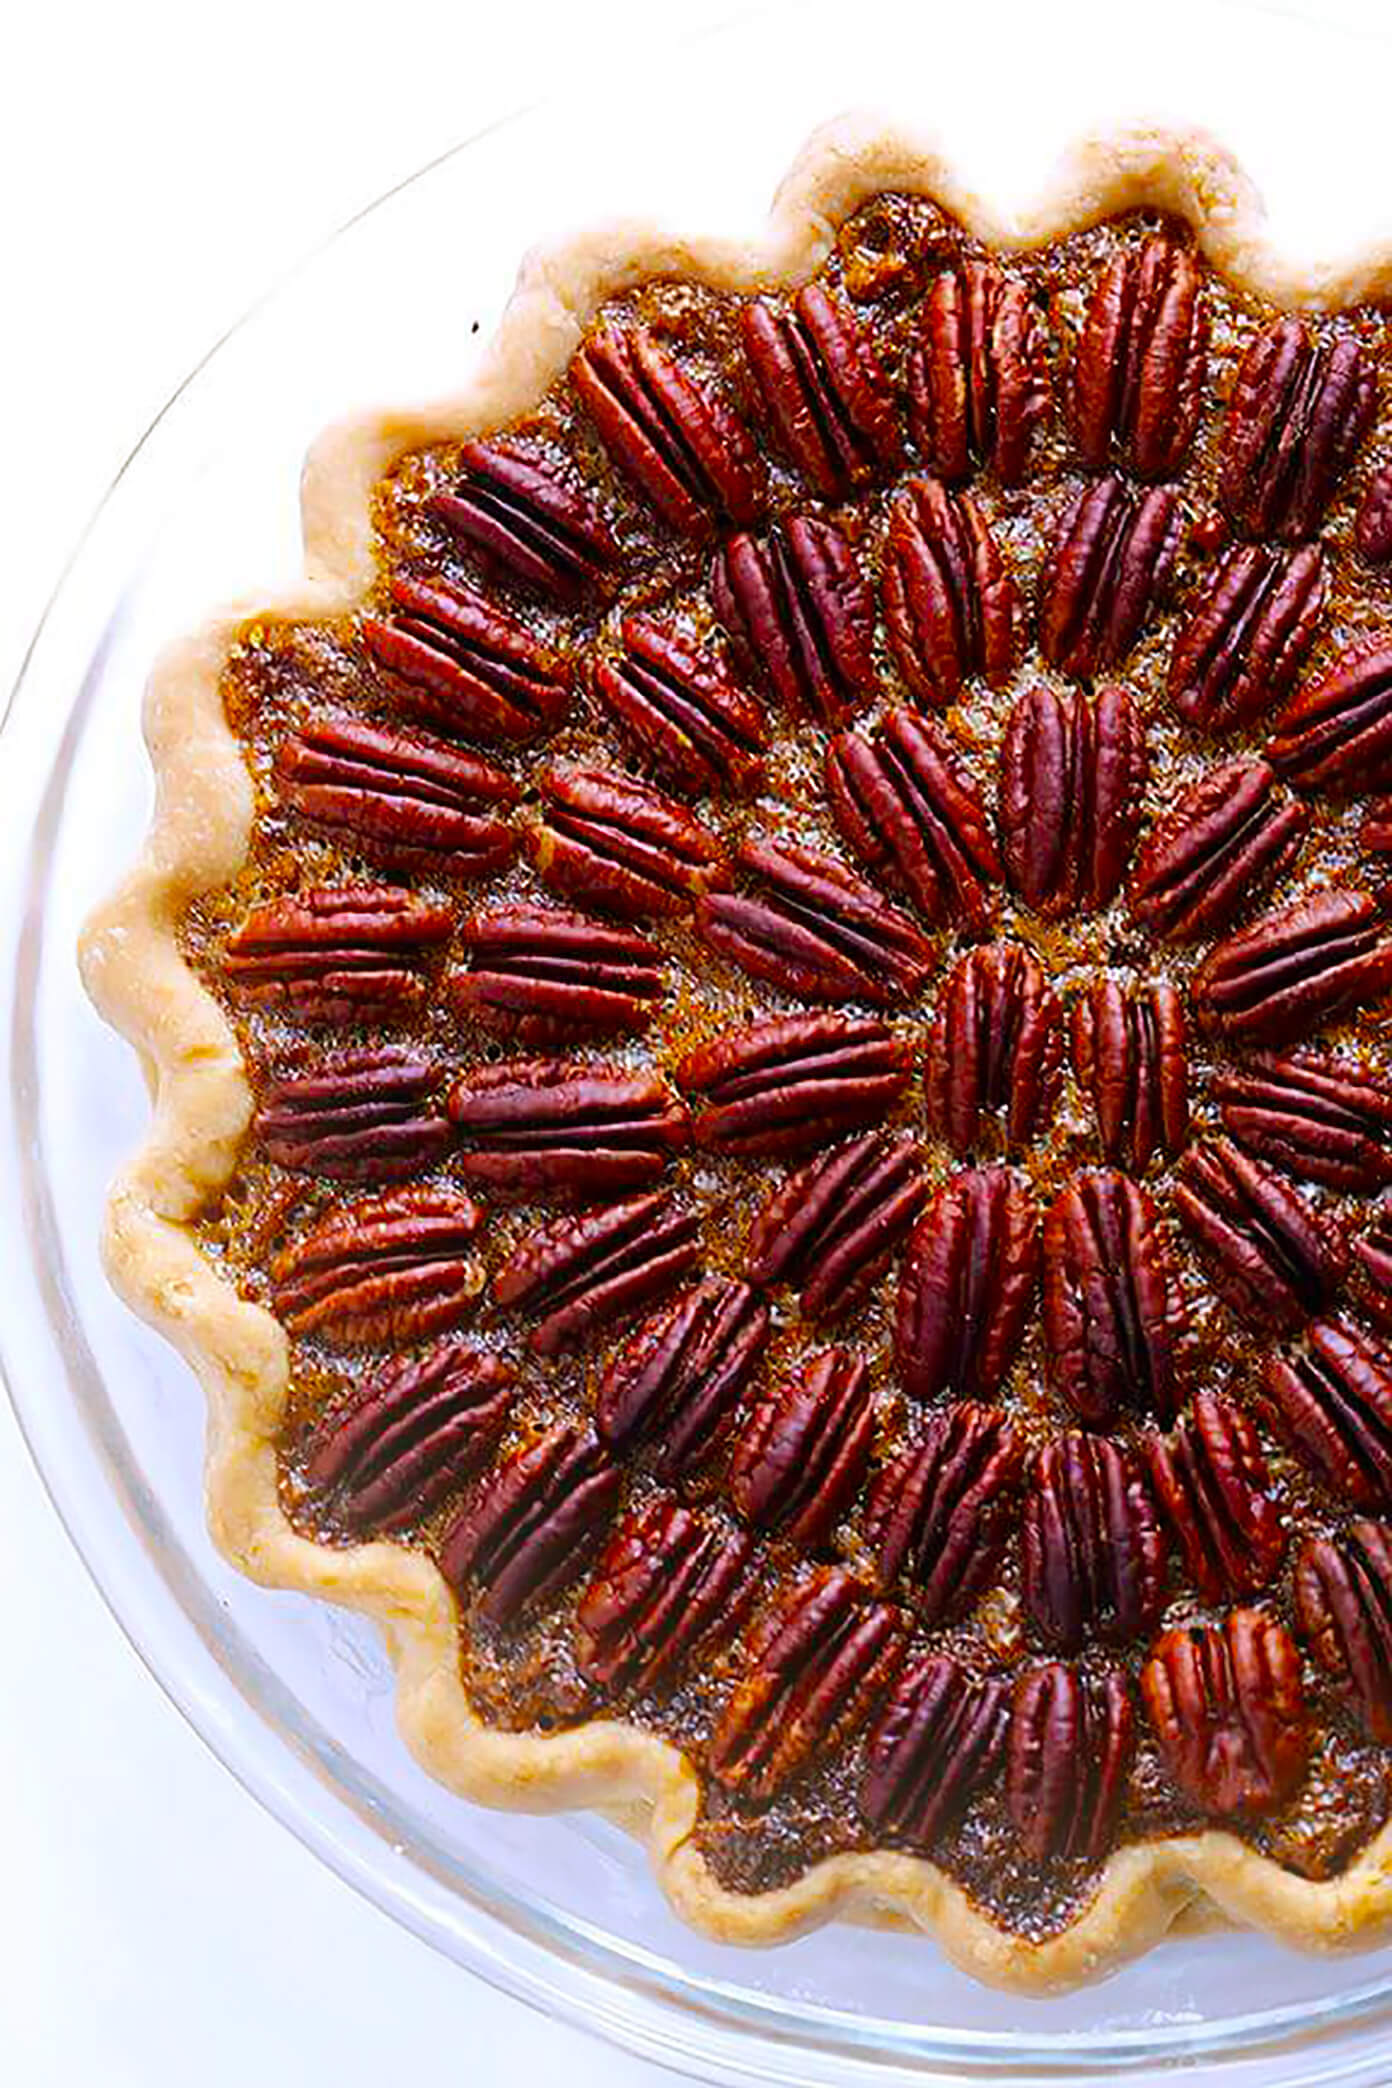 My grandma's classic Pecan Pie recipe will forever be one of my favorite Thanksgiving desserts.